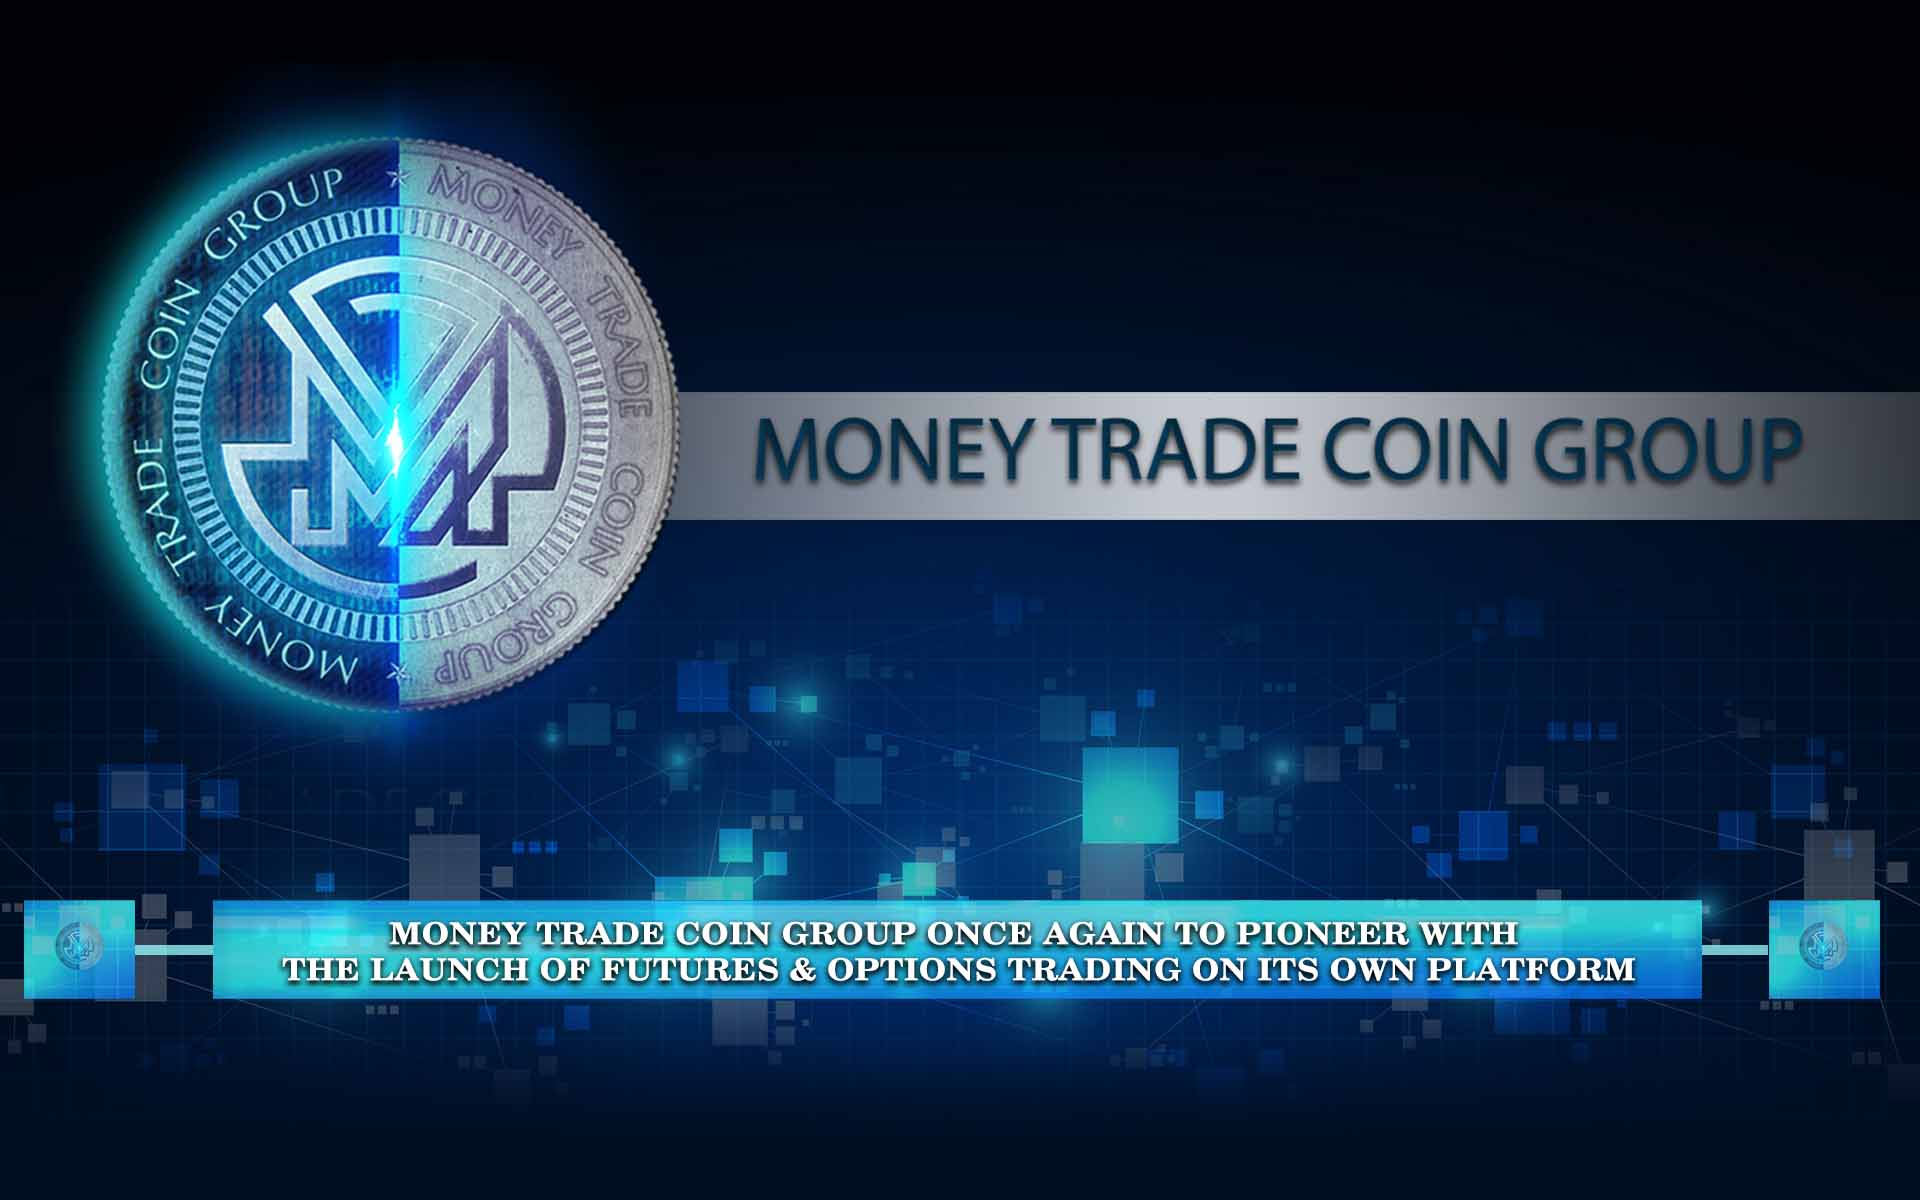 Money Trade Coin Group Once Again to Pioneer with the Launch of Futures & Options Trading on its own Platform